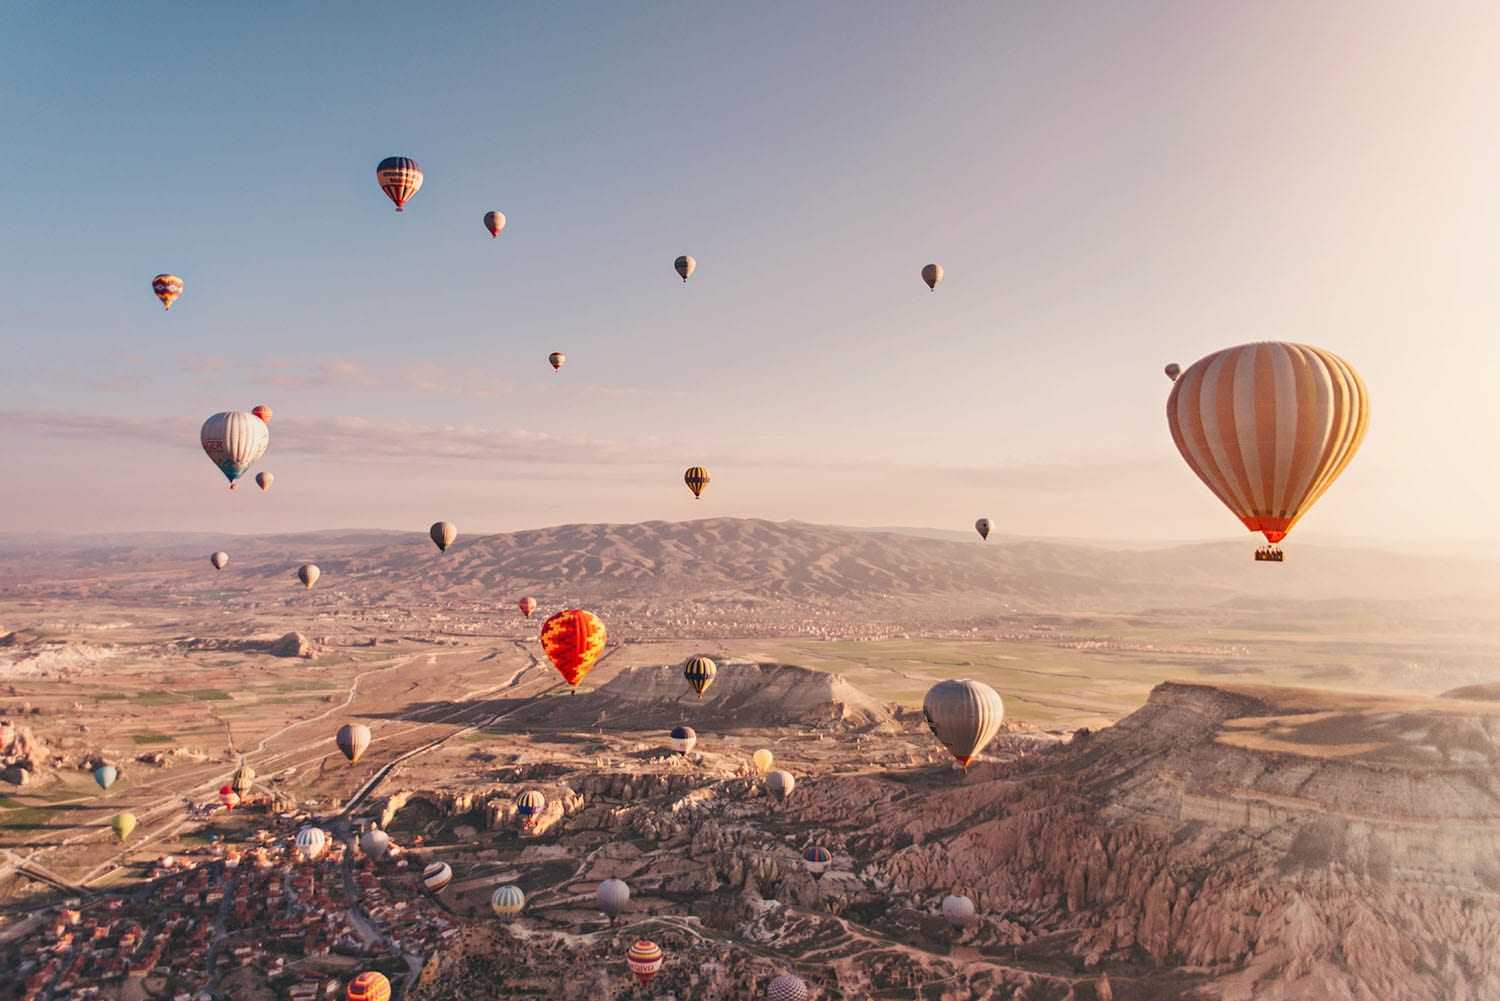 Beautiful sunrise with hot air balloons in Cappadocia, Turkey